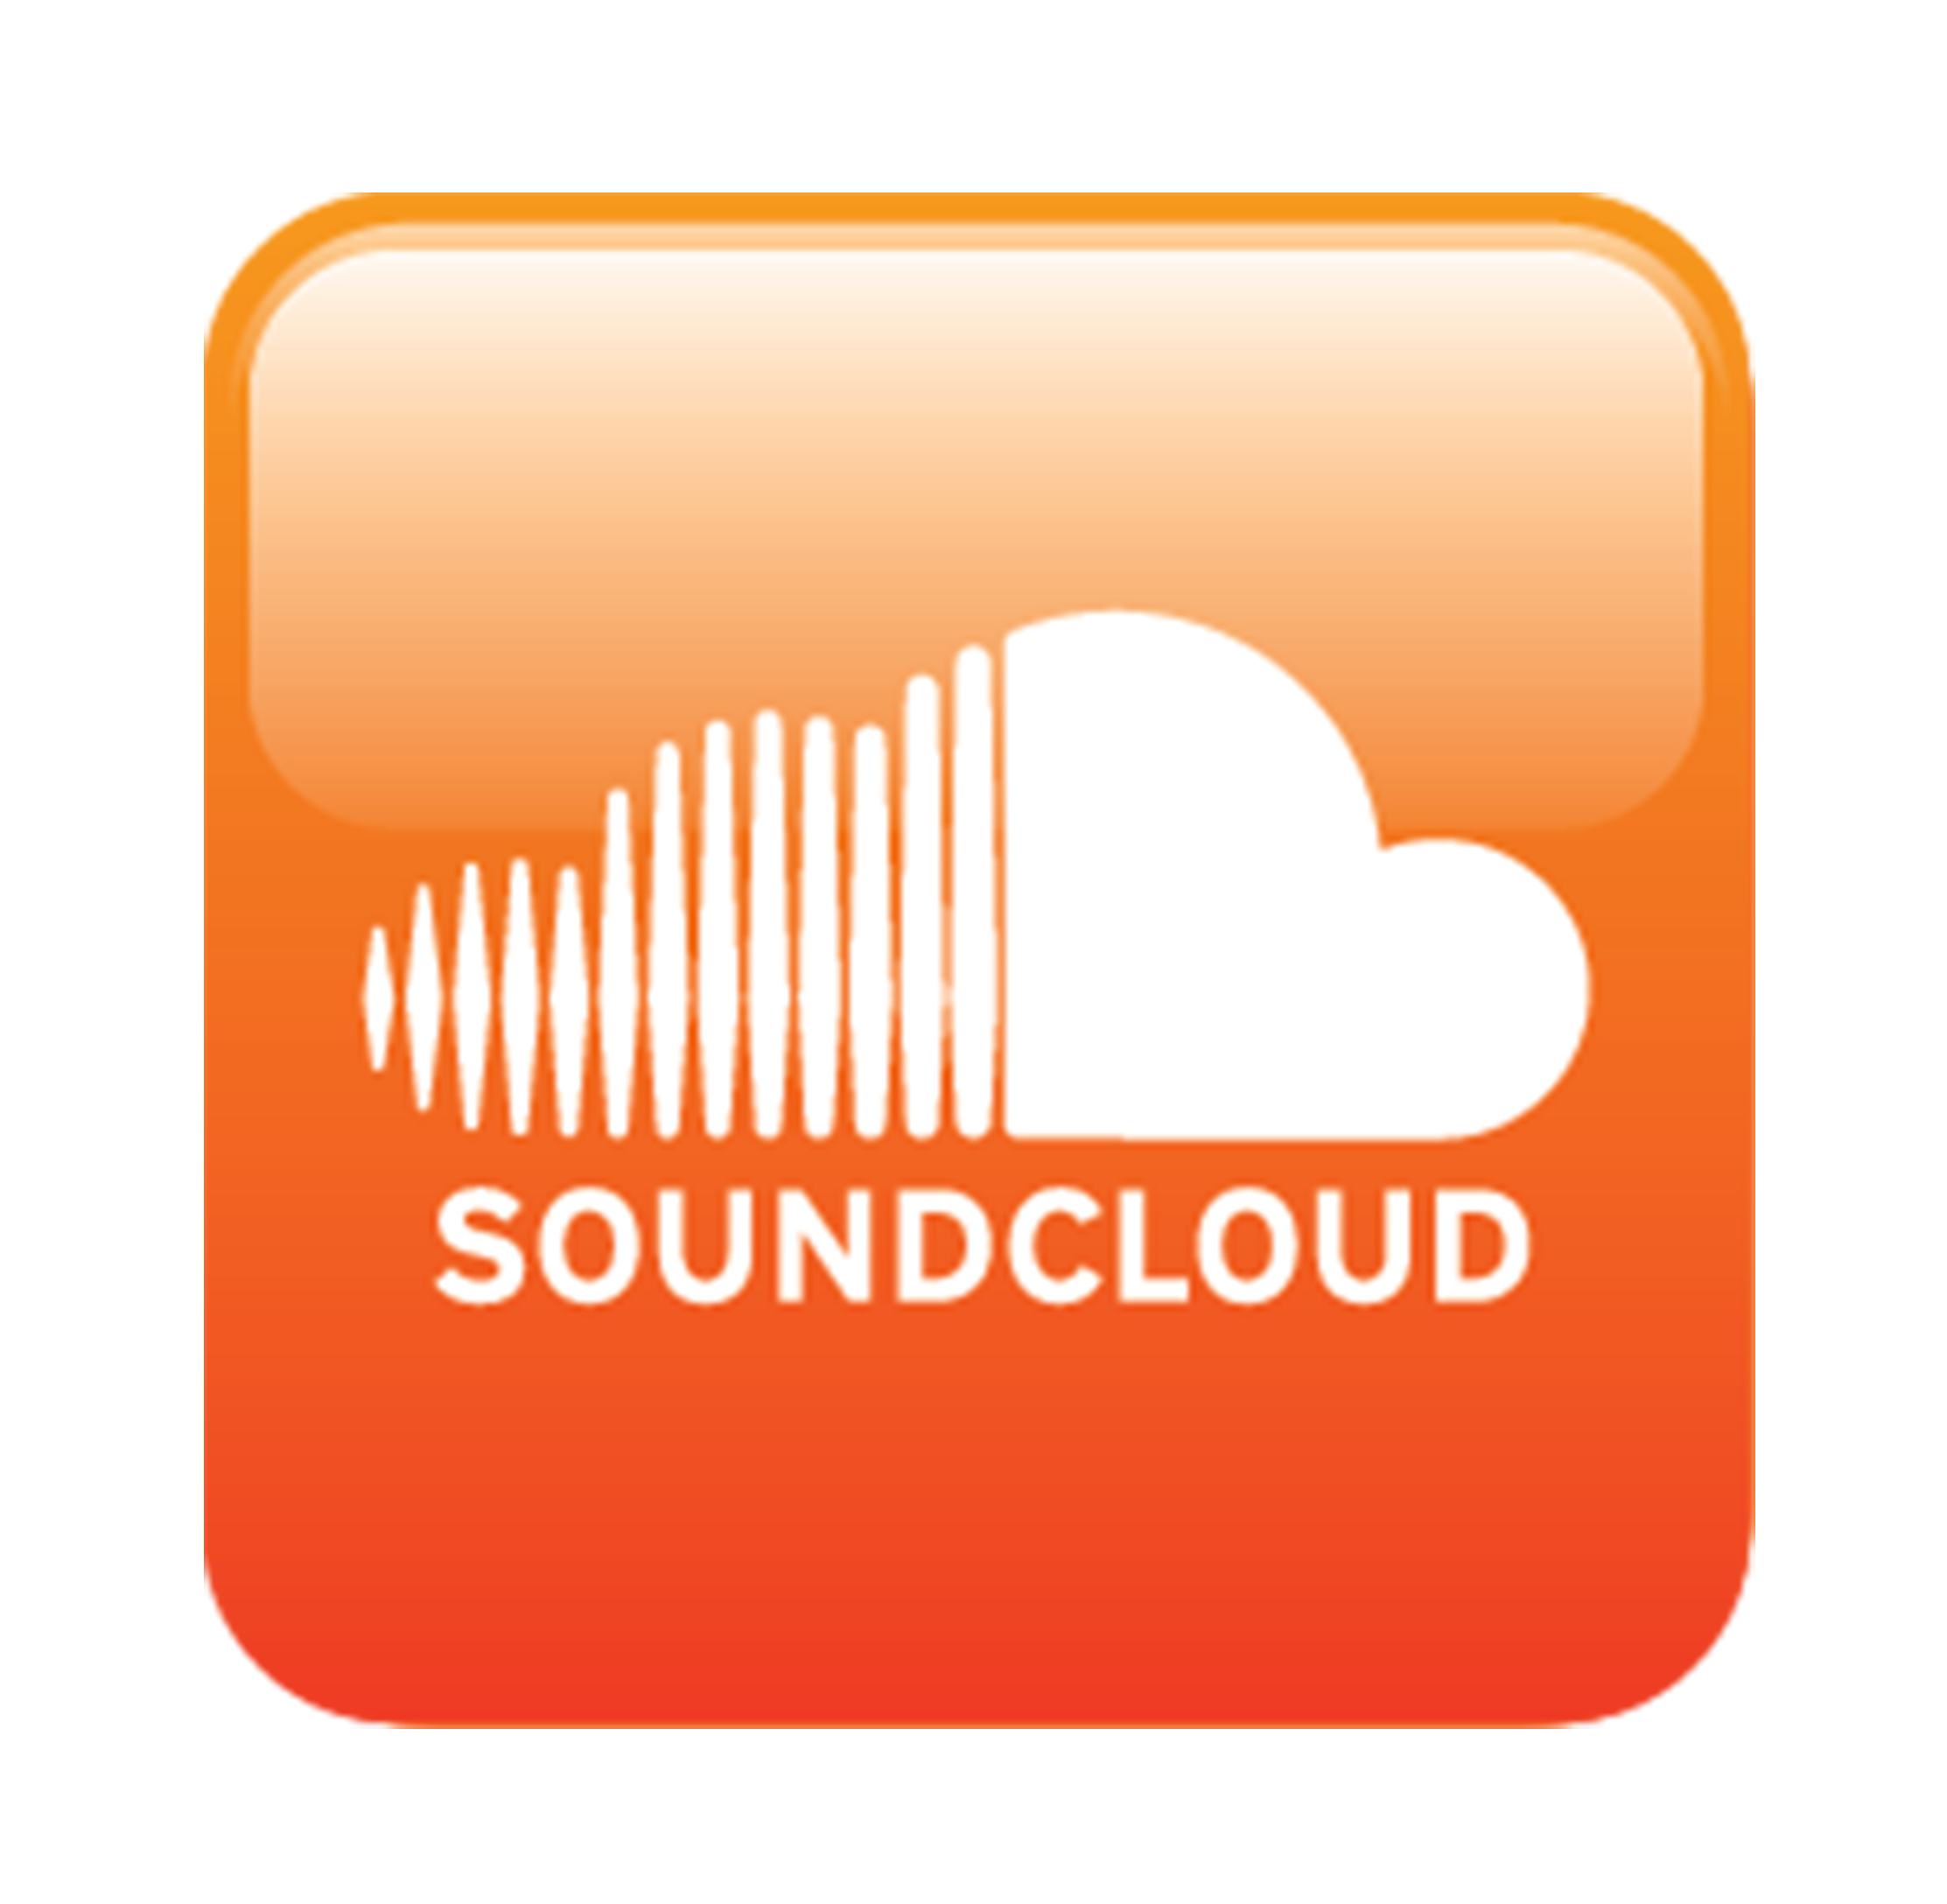 soundcloud subscription tier on the way